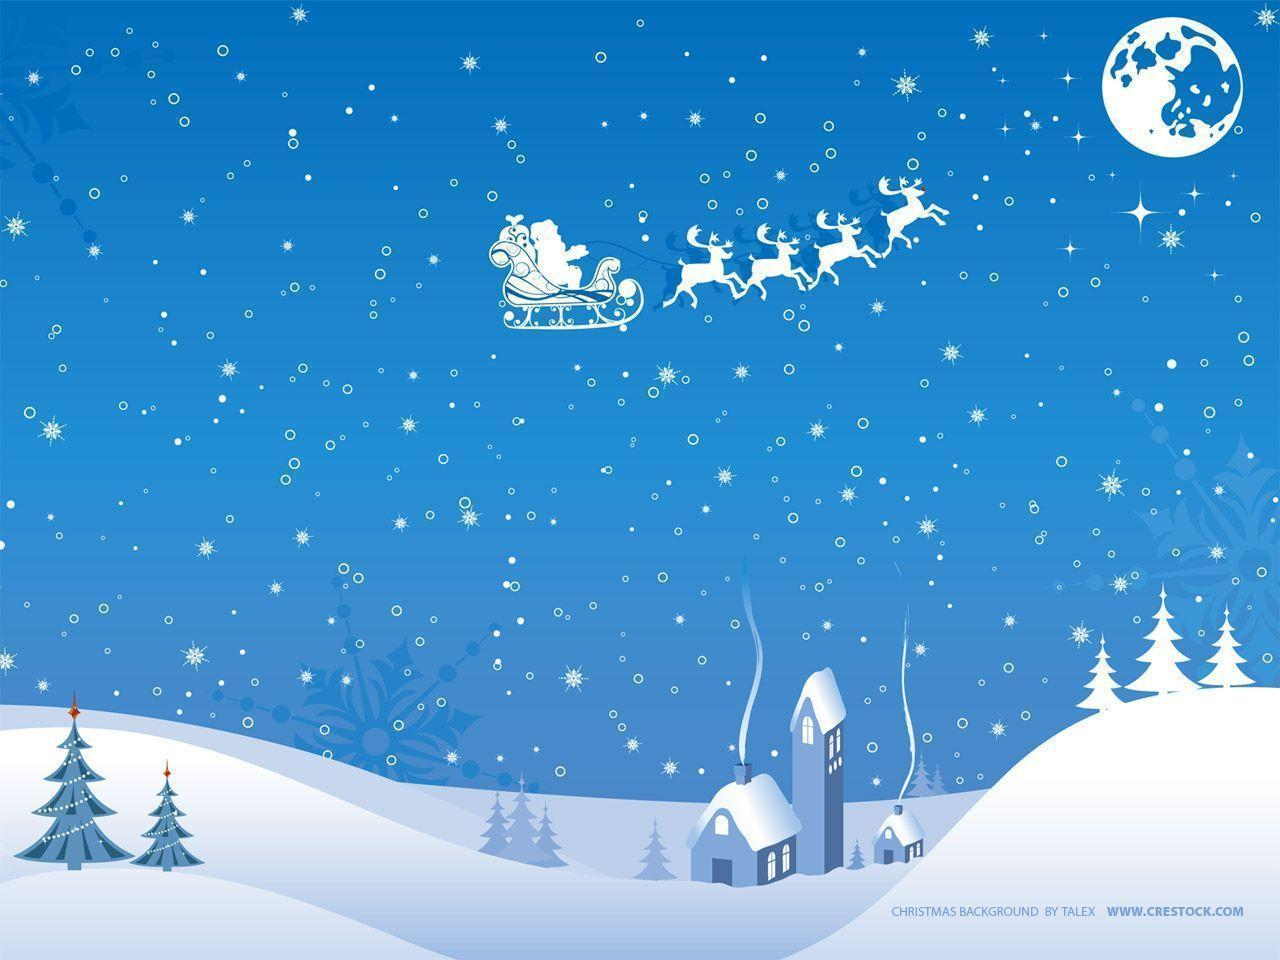 wallpapers for blue christmas background wallpaper - Blue Christmas Background